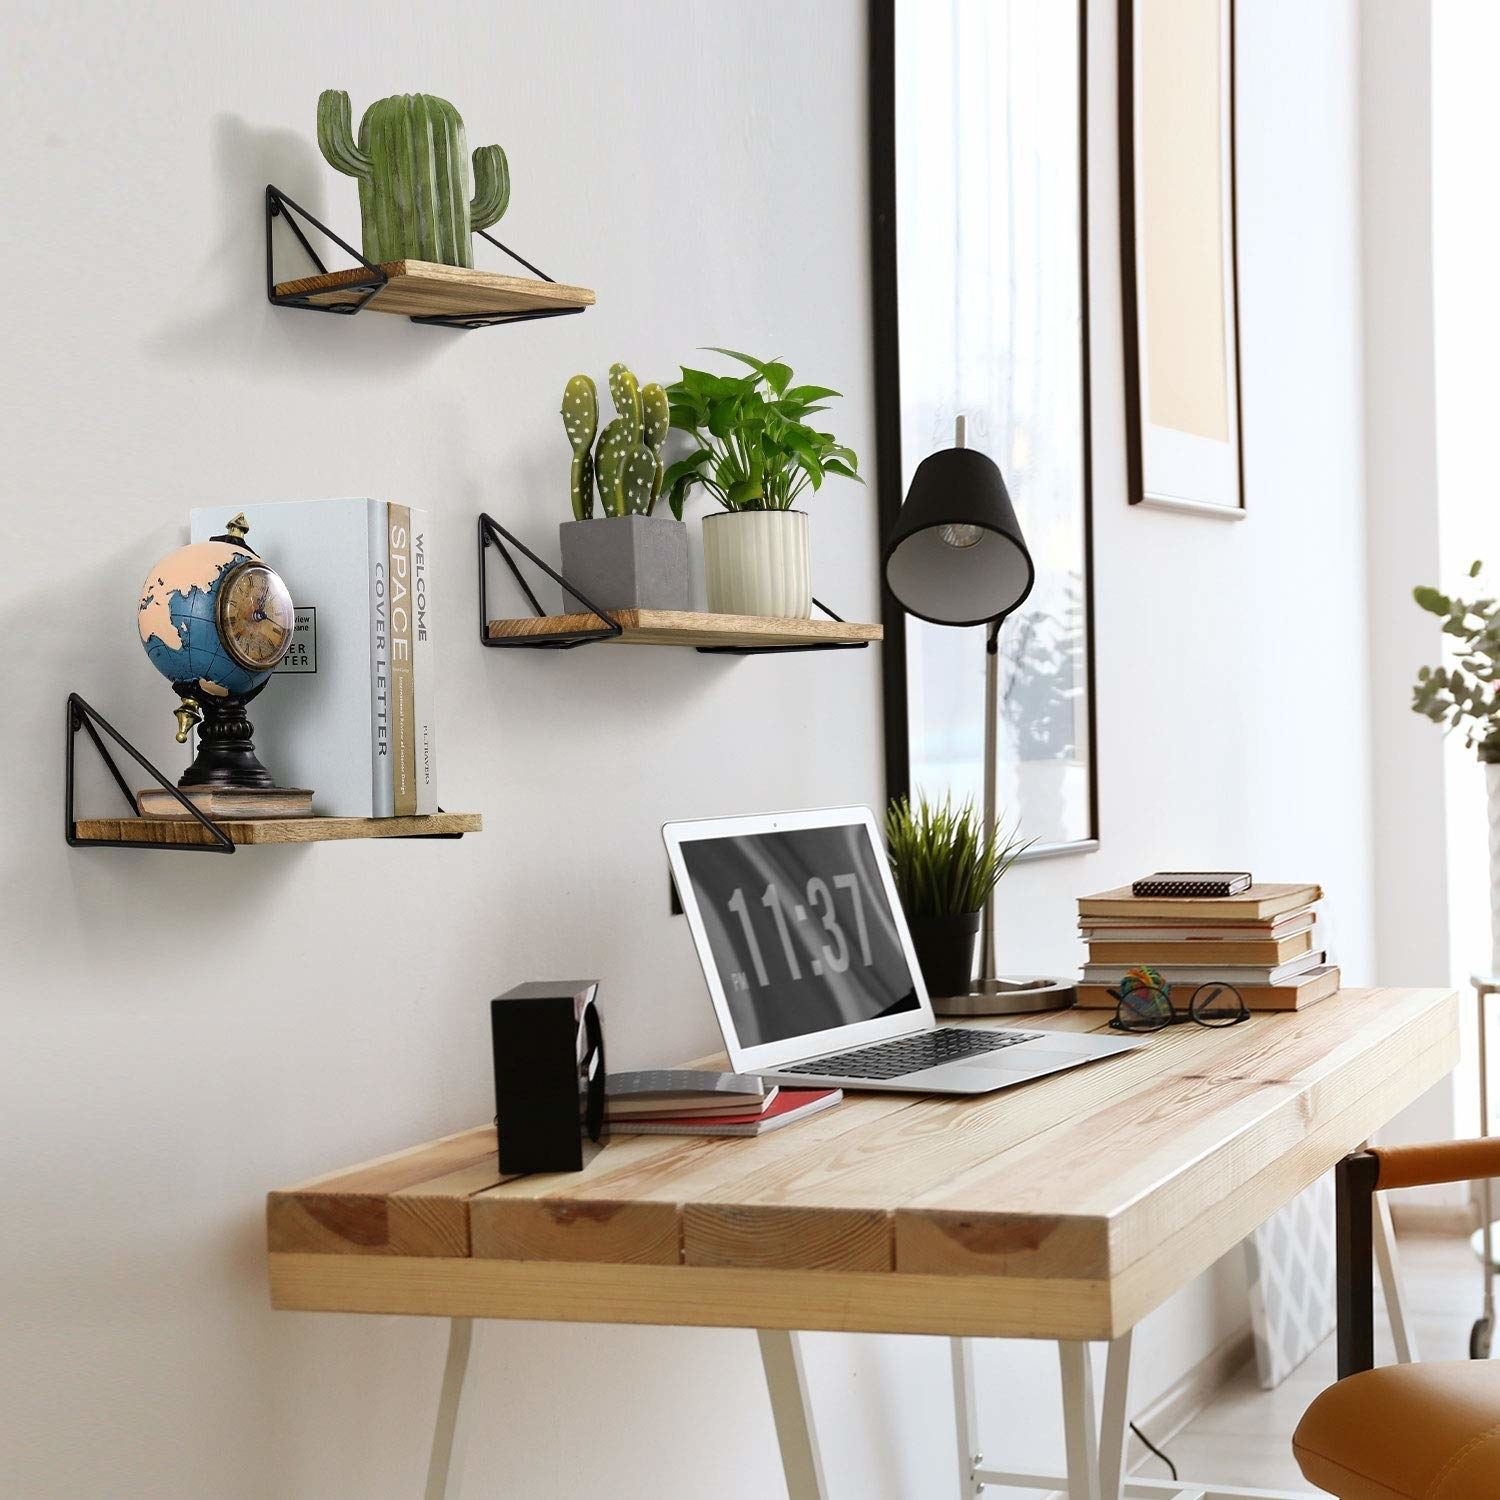 Set of three light wood floating shelves installed on a wall above a desk